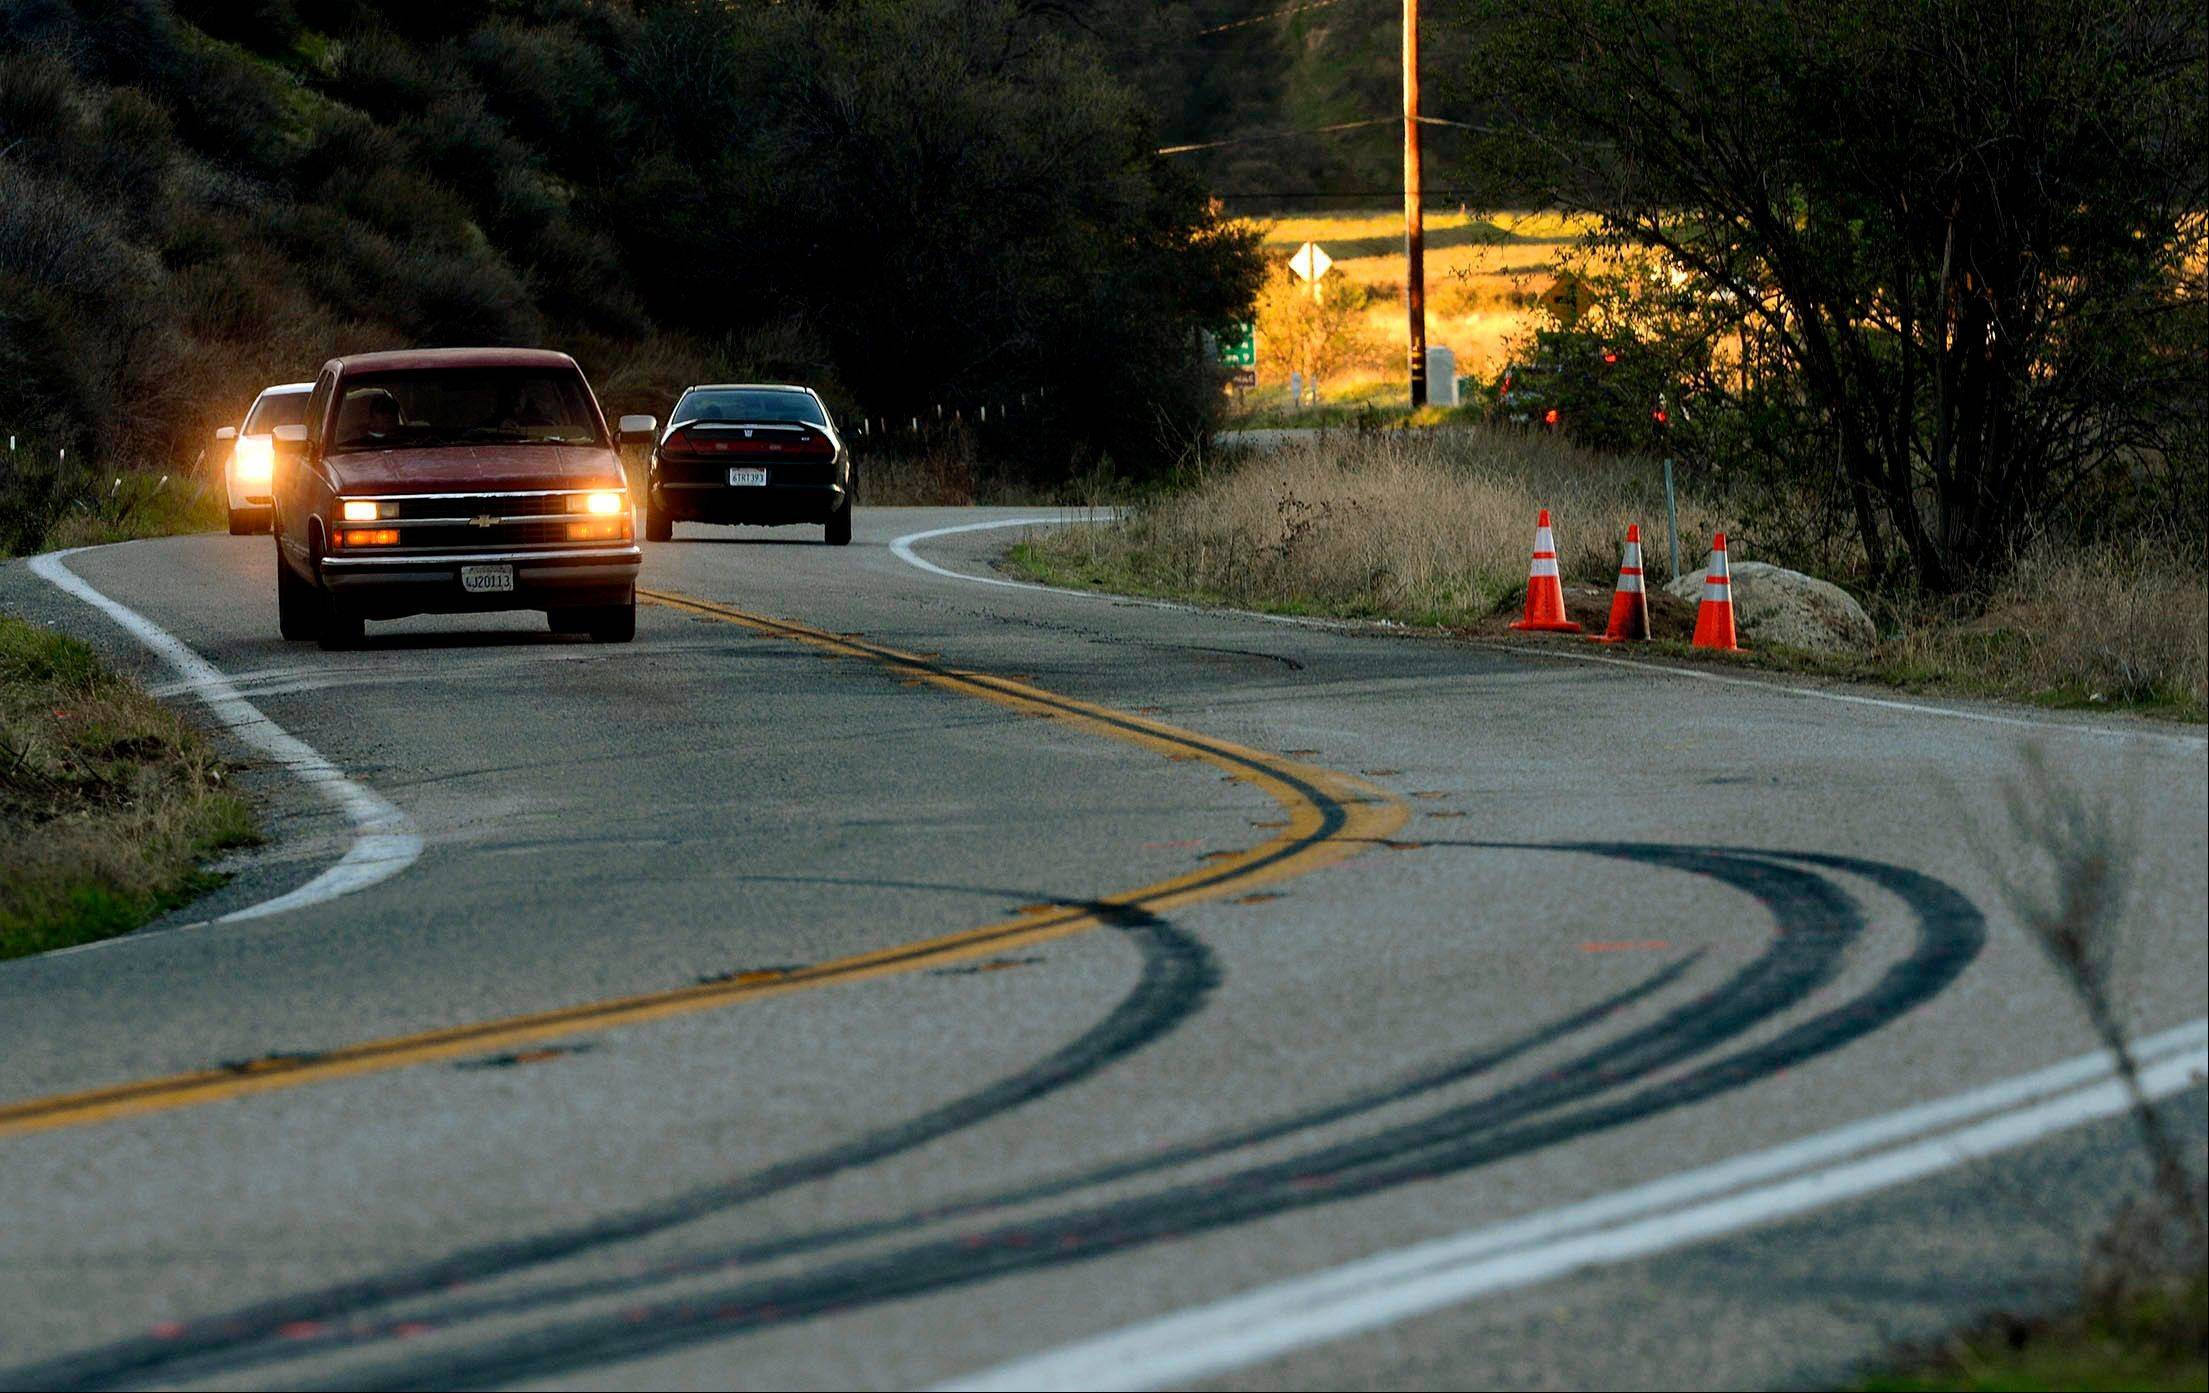 Skid marks from the weekend's fatal bus cash remain on the pavement as morning commuters drive along Highway 38 for the first time since the road was reopened, Tuesday, Feb. 5, 2013 in Yucaipa, Calif.